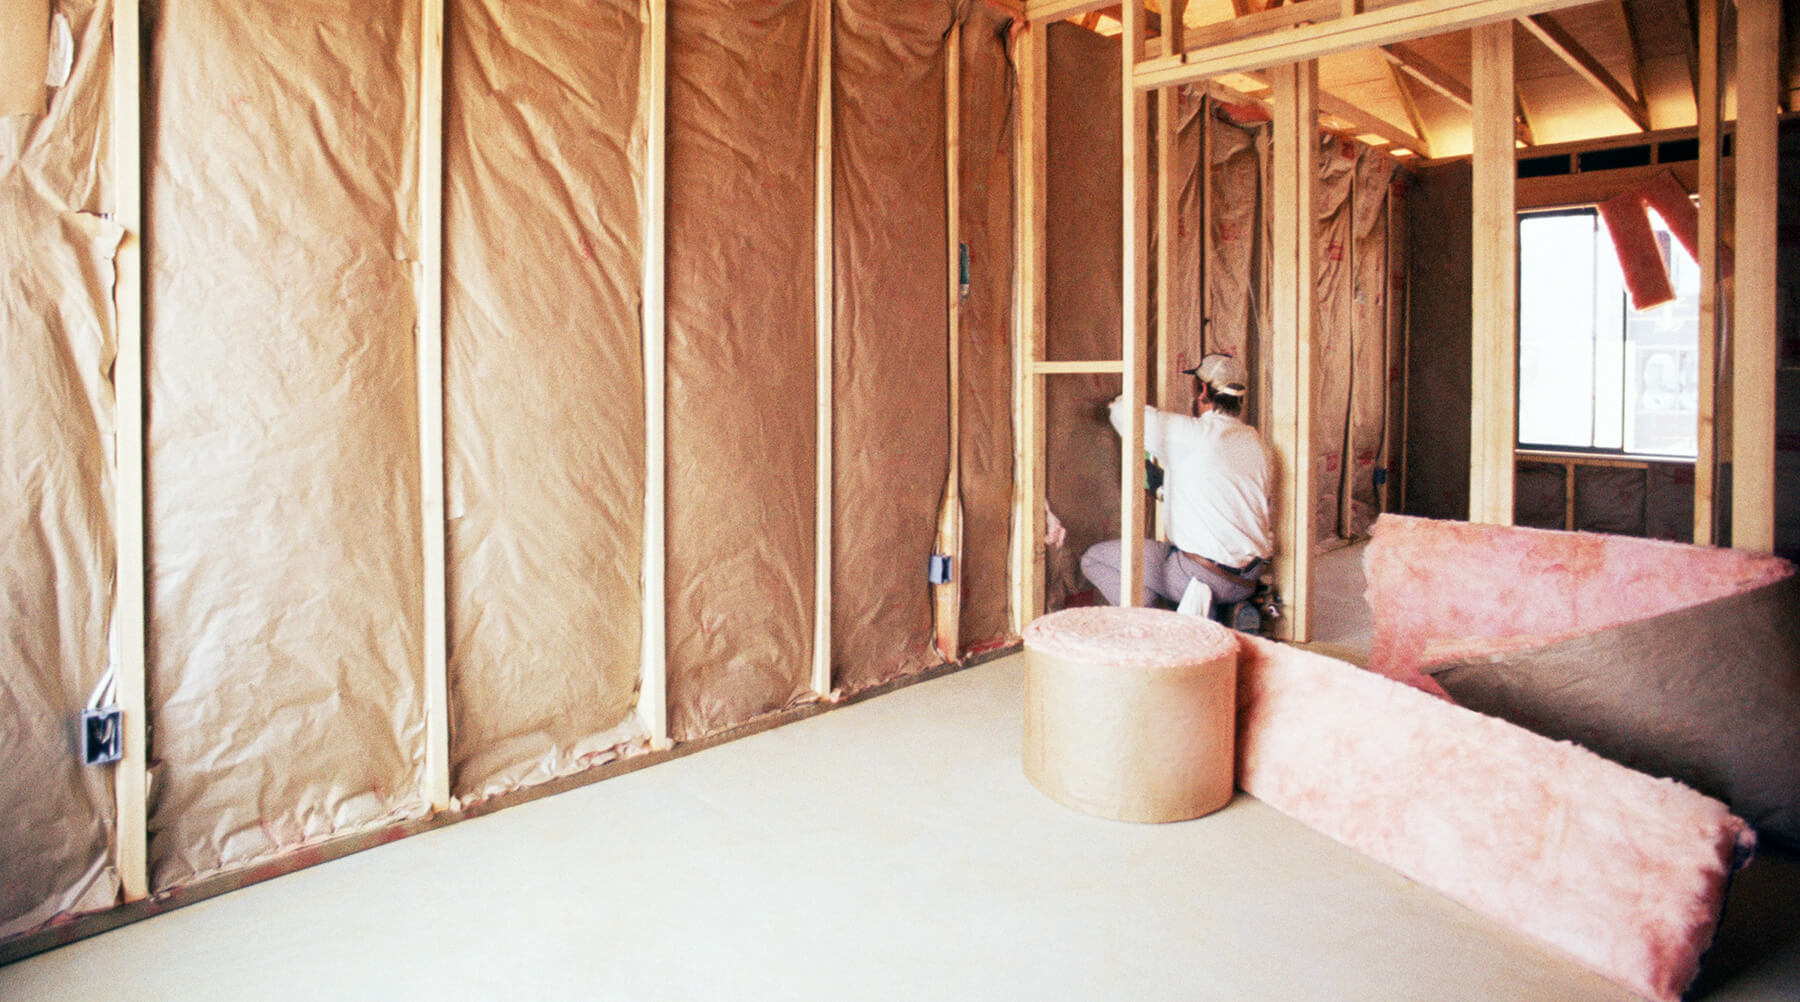 a+ insulation offers home insulating services in janesville wi